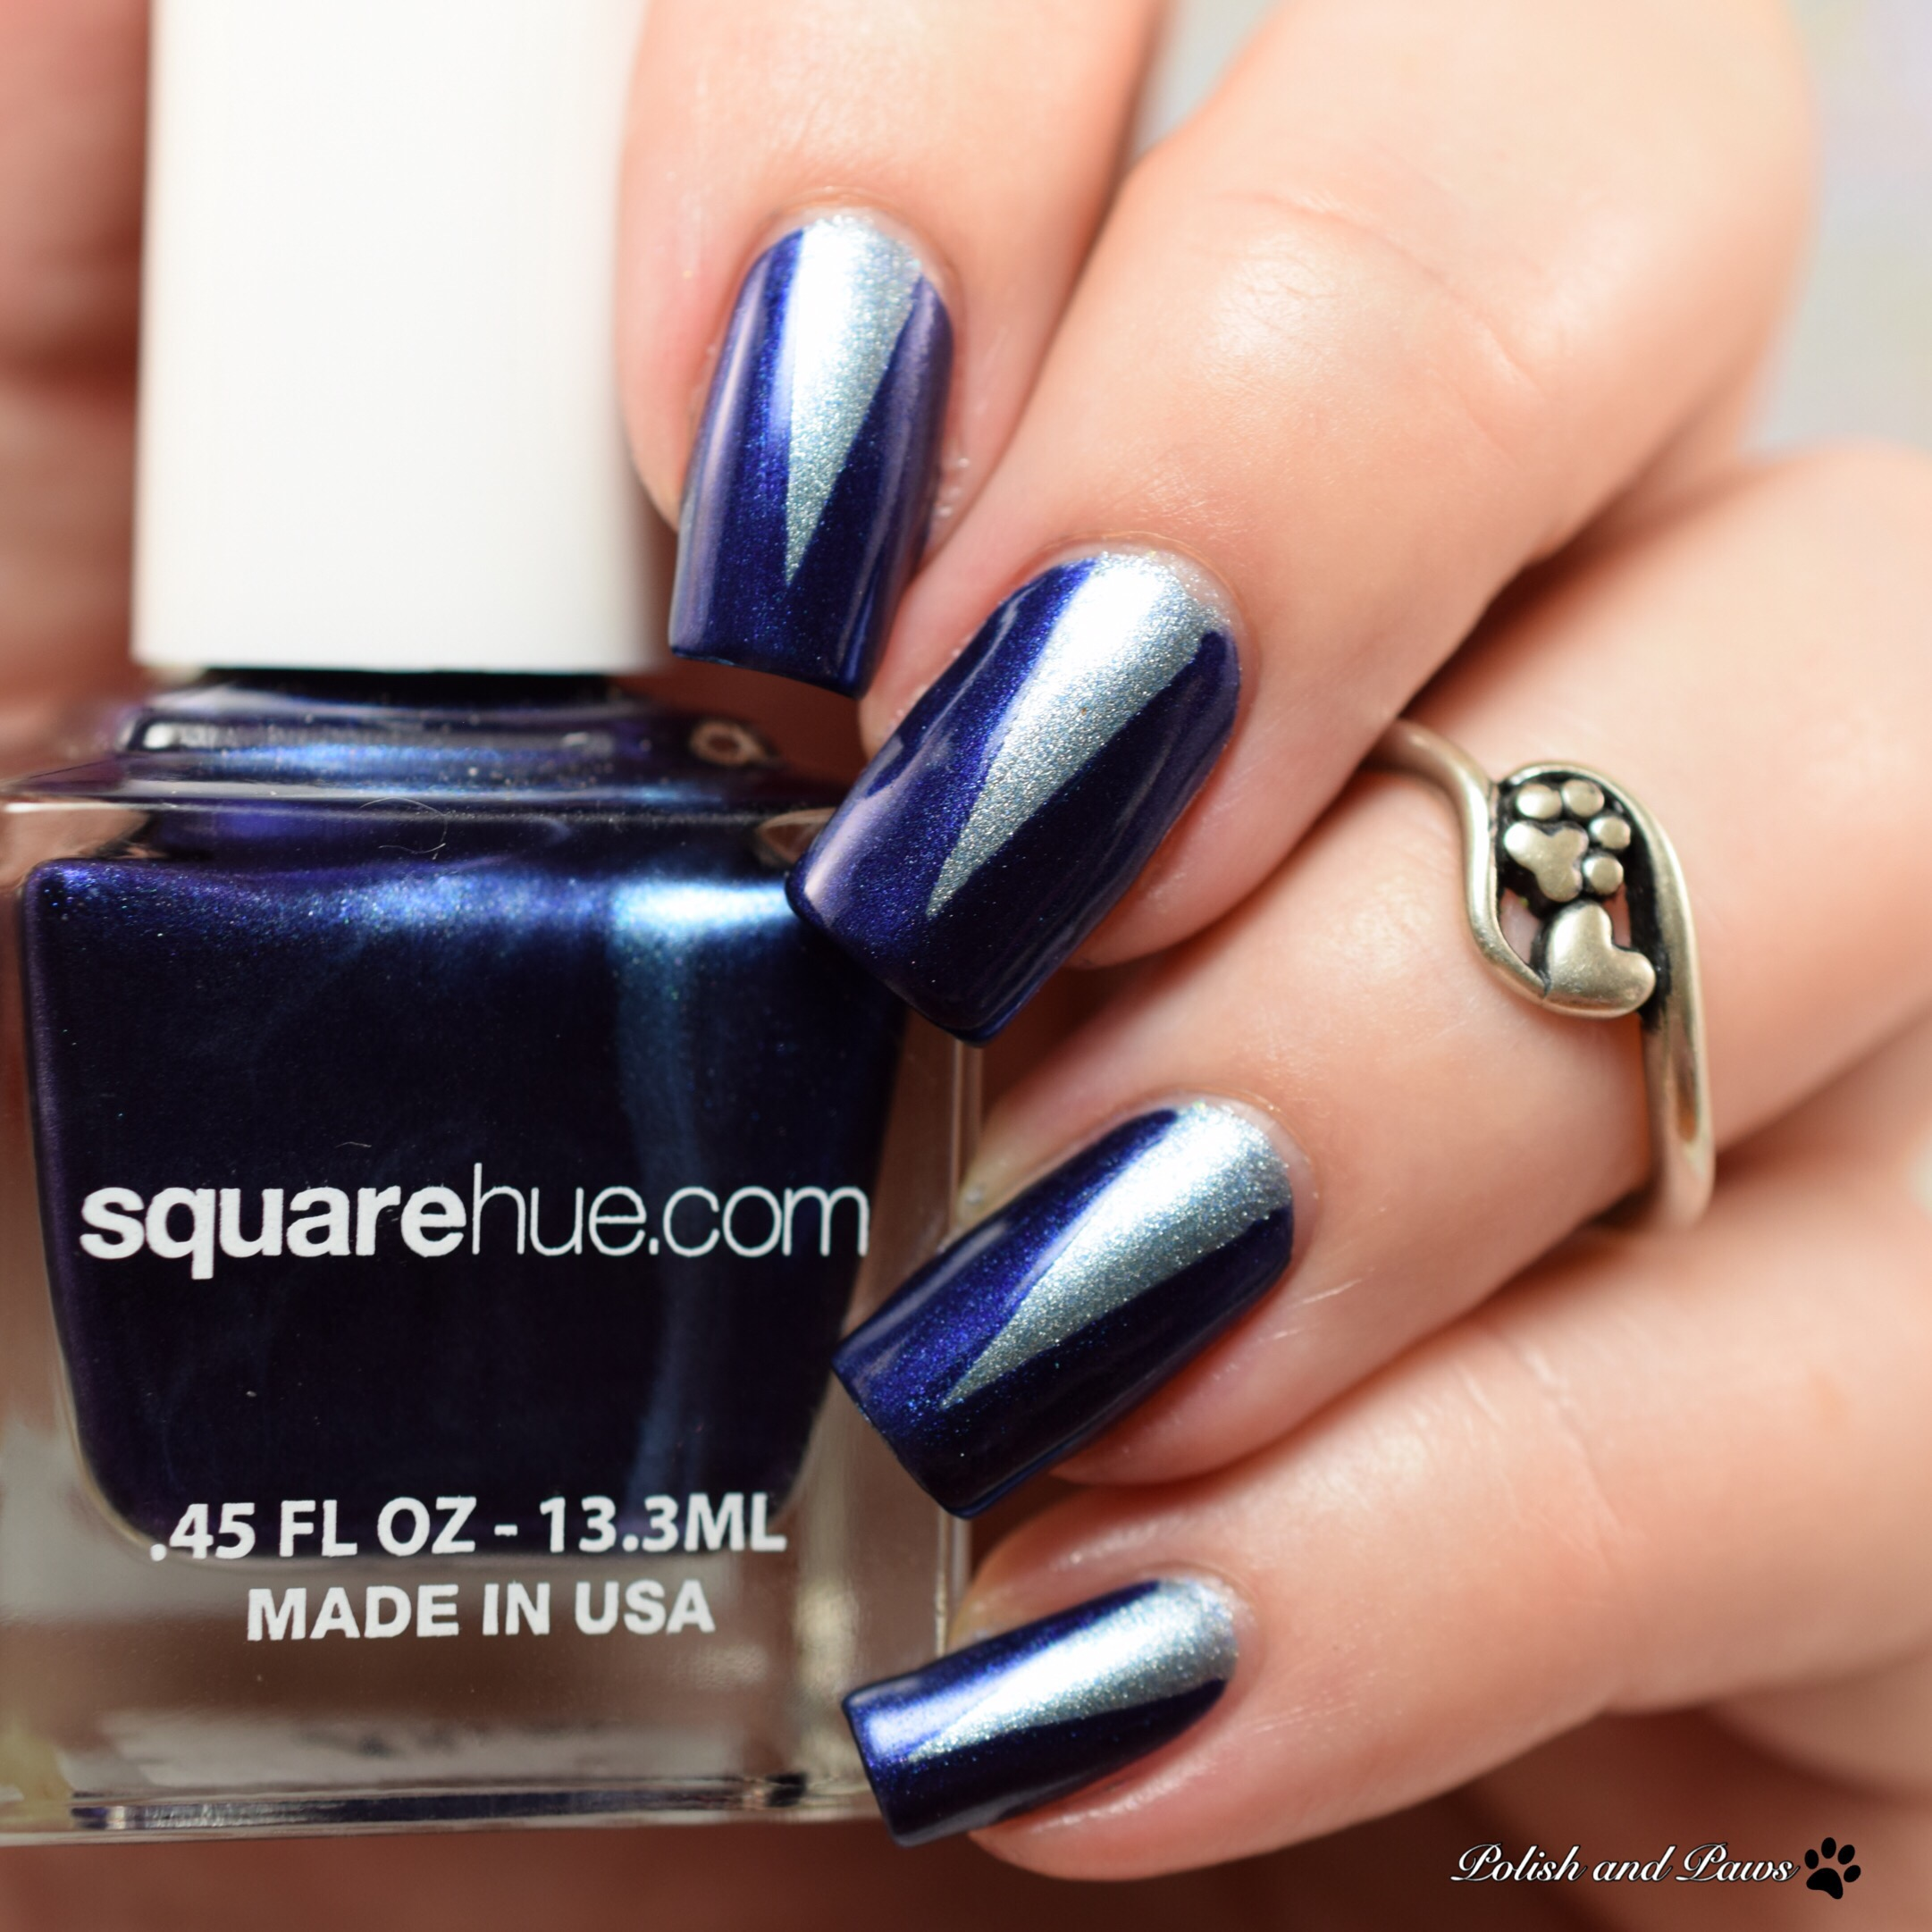 Triangle Vinyls with Square Hue Golpe and Media Luna